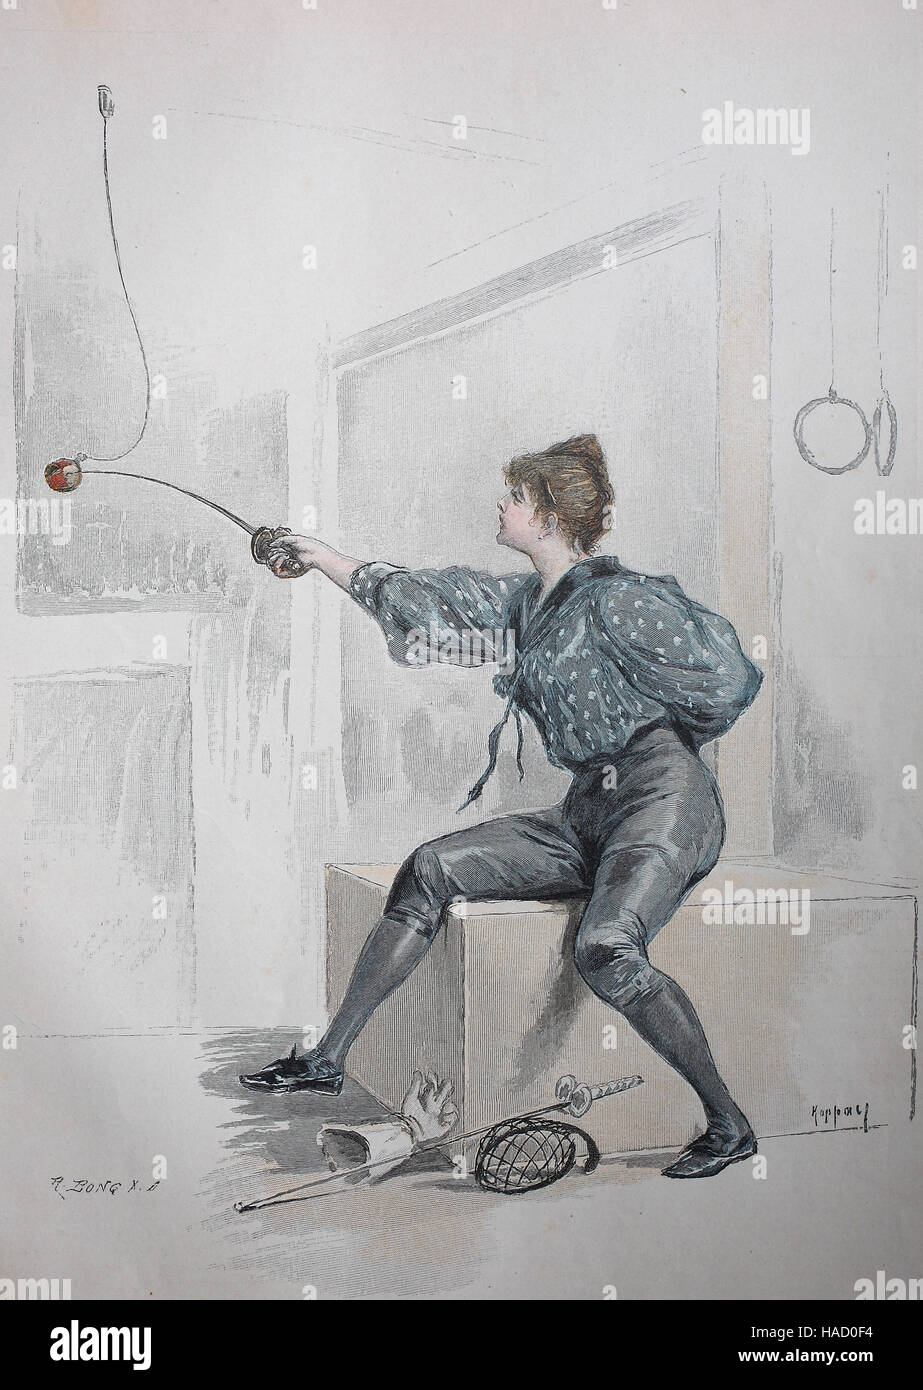 fencing woman, illustration published in 1880 - Stock Image